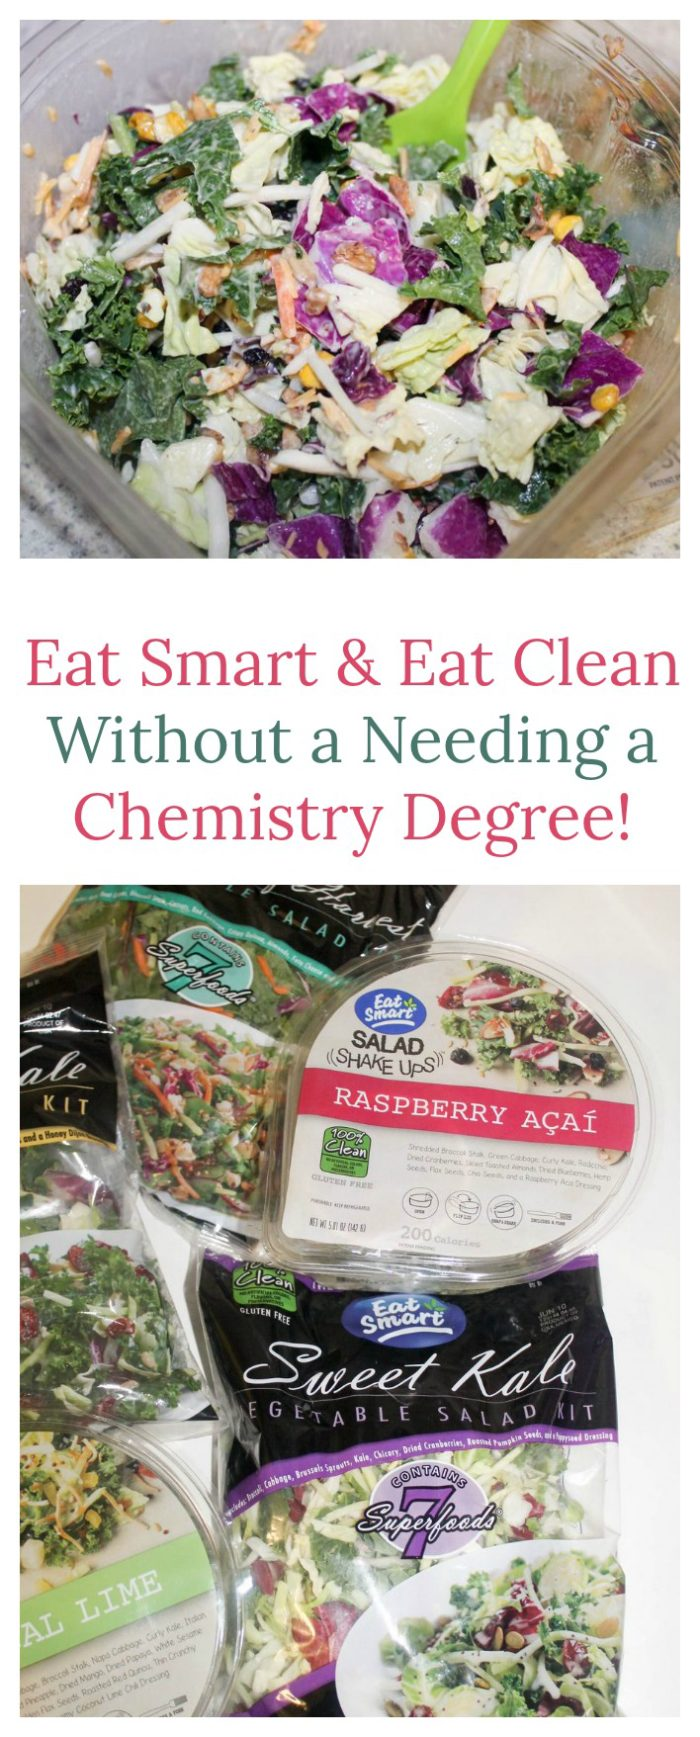 How to Eat Smart & Eat Clean Without a Needing a Chemistry Degree!